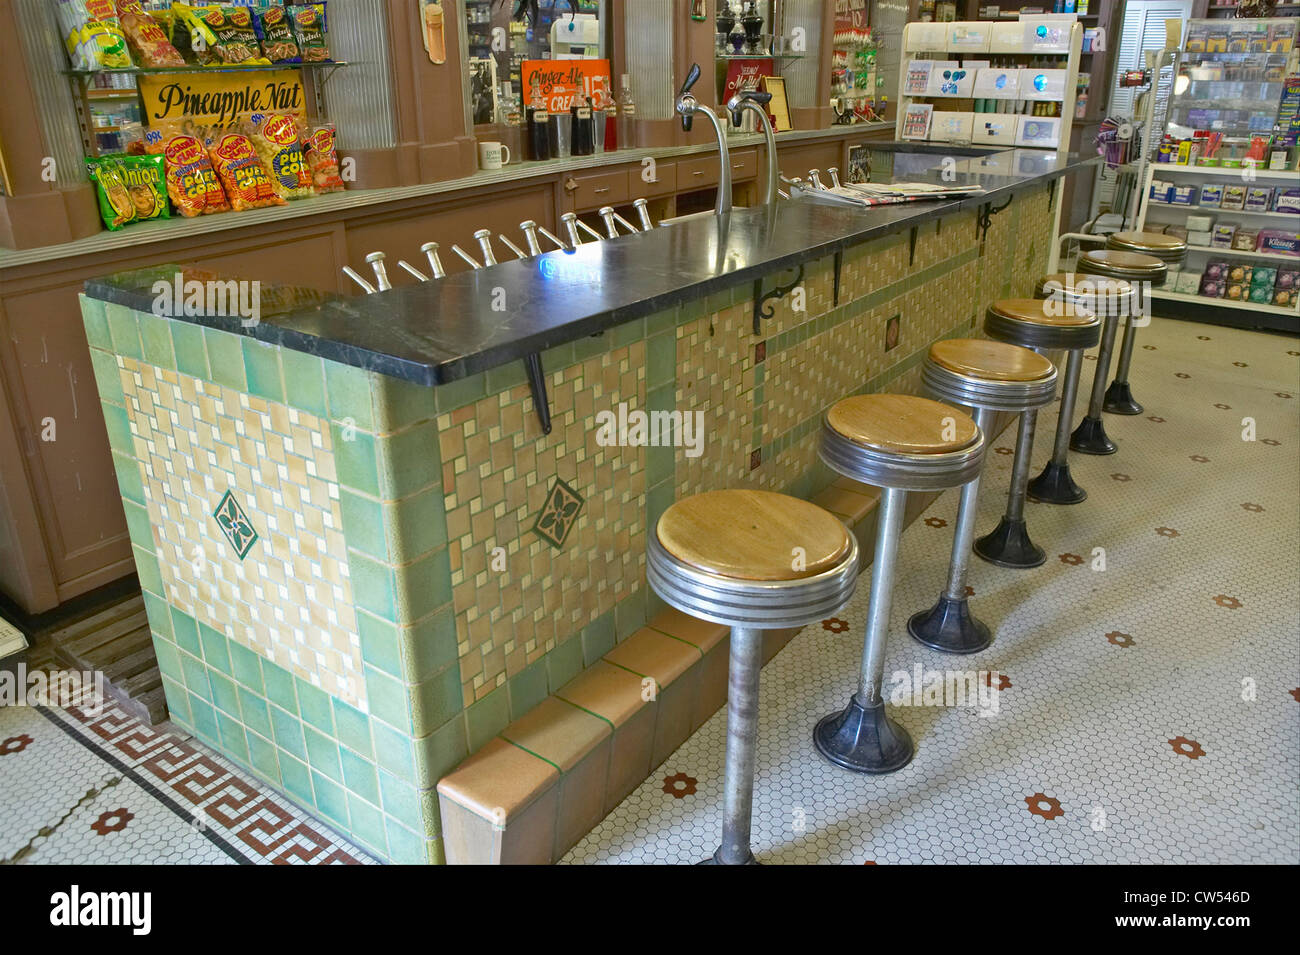 Old Fashioned Soda Fountain Stock Photos Amp Old Fashioned